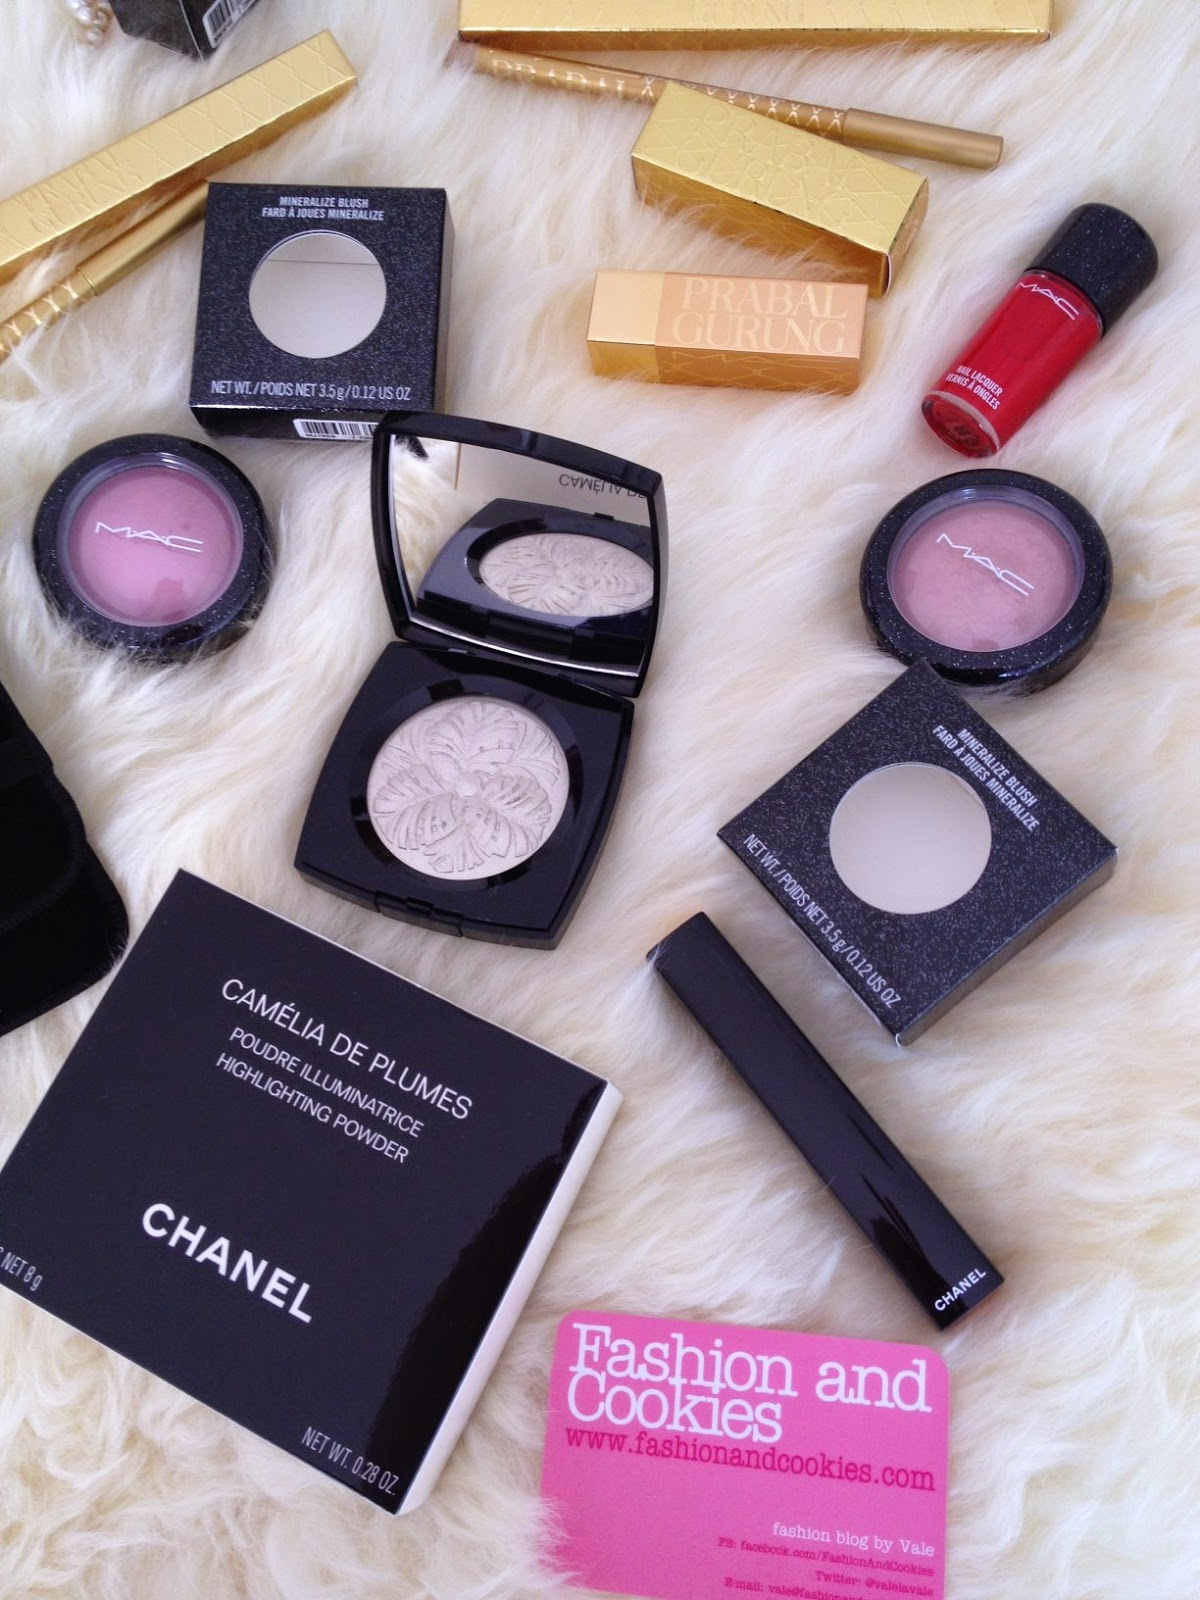 Makeup Holiday 2014 collection, Chanel Plumes precieuses makeup, MAC limited Edition makeup, Fashion and Cookies, fashion blogger